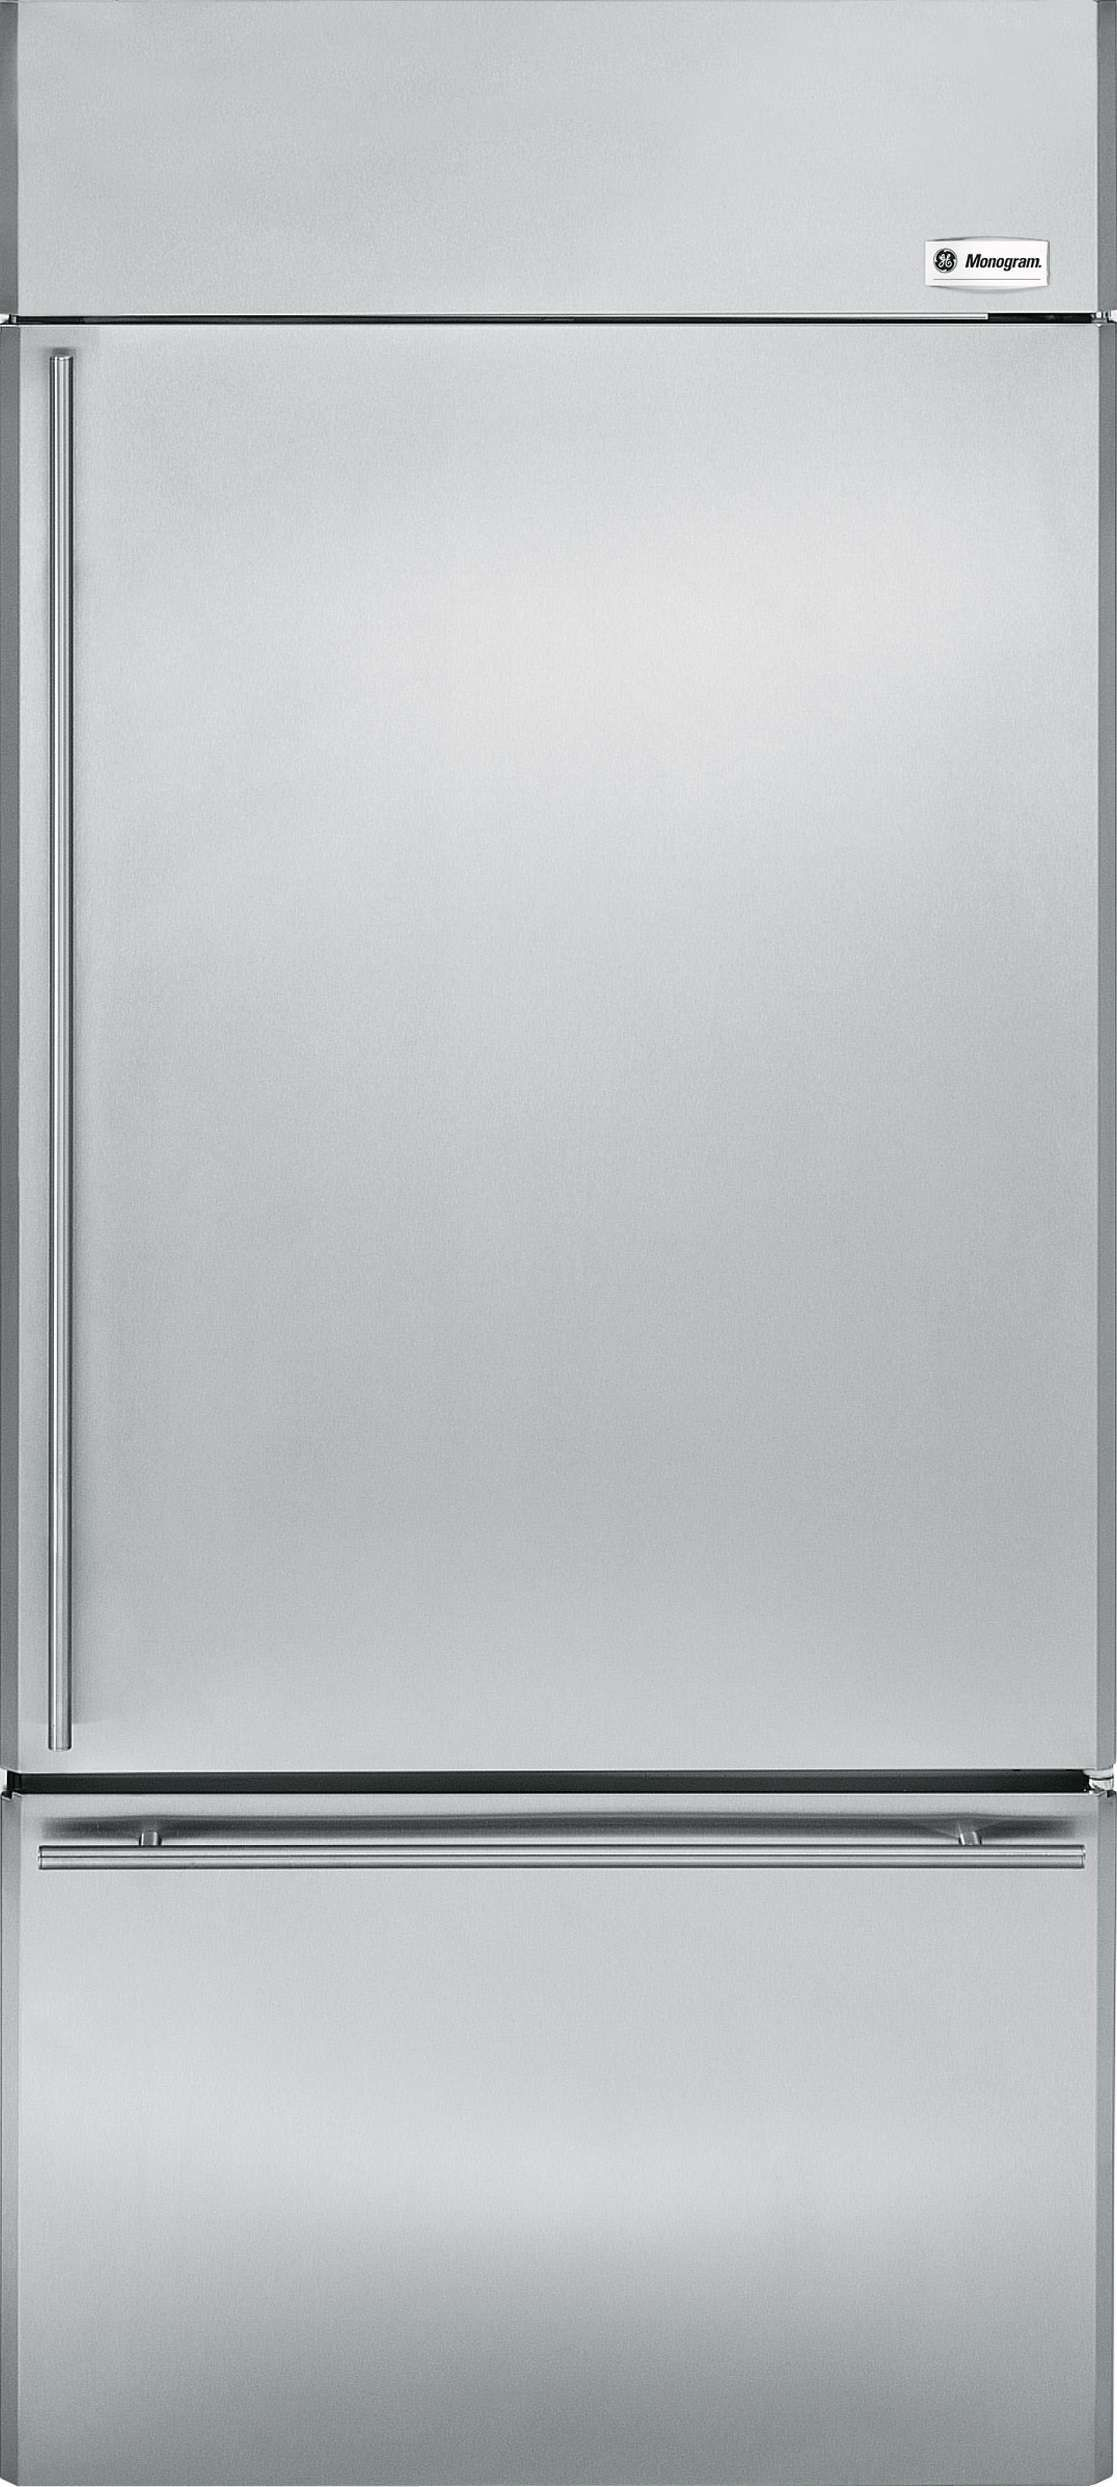 Lowest Price On Ge Monogram Zics360nhrh 36 20 6 Cu Ft Stainless Steel Built In Bottom Freezer Refrigerator Energy Star Today